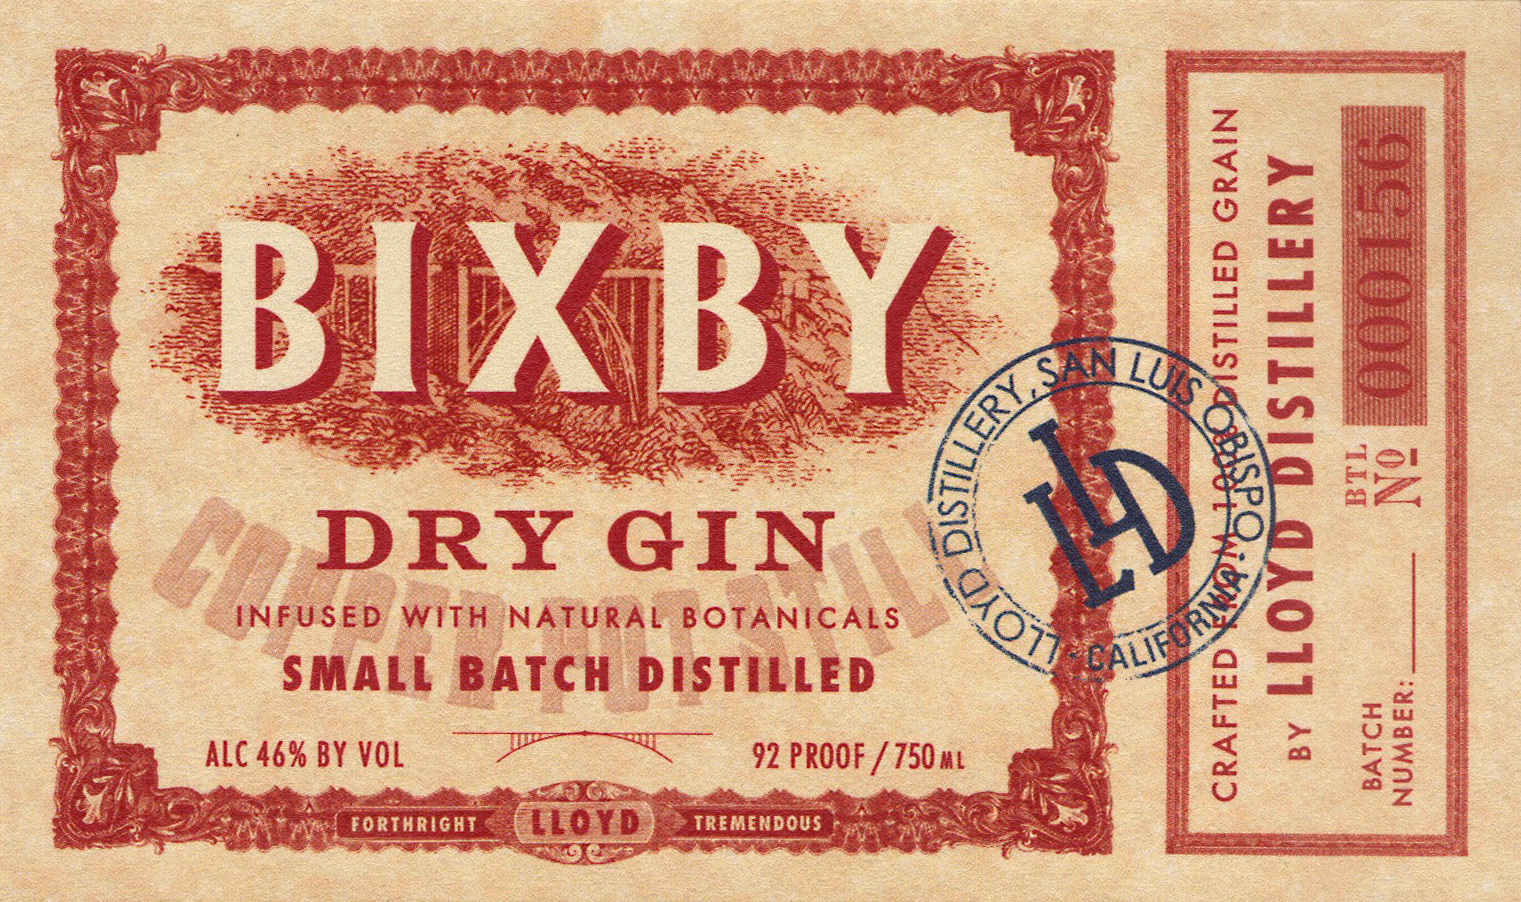 bixby label.jpg